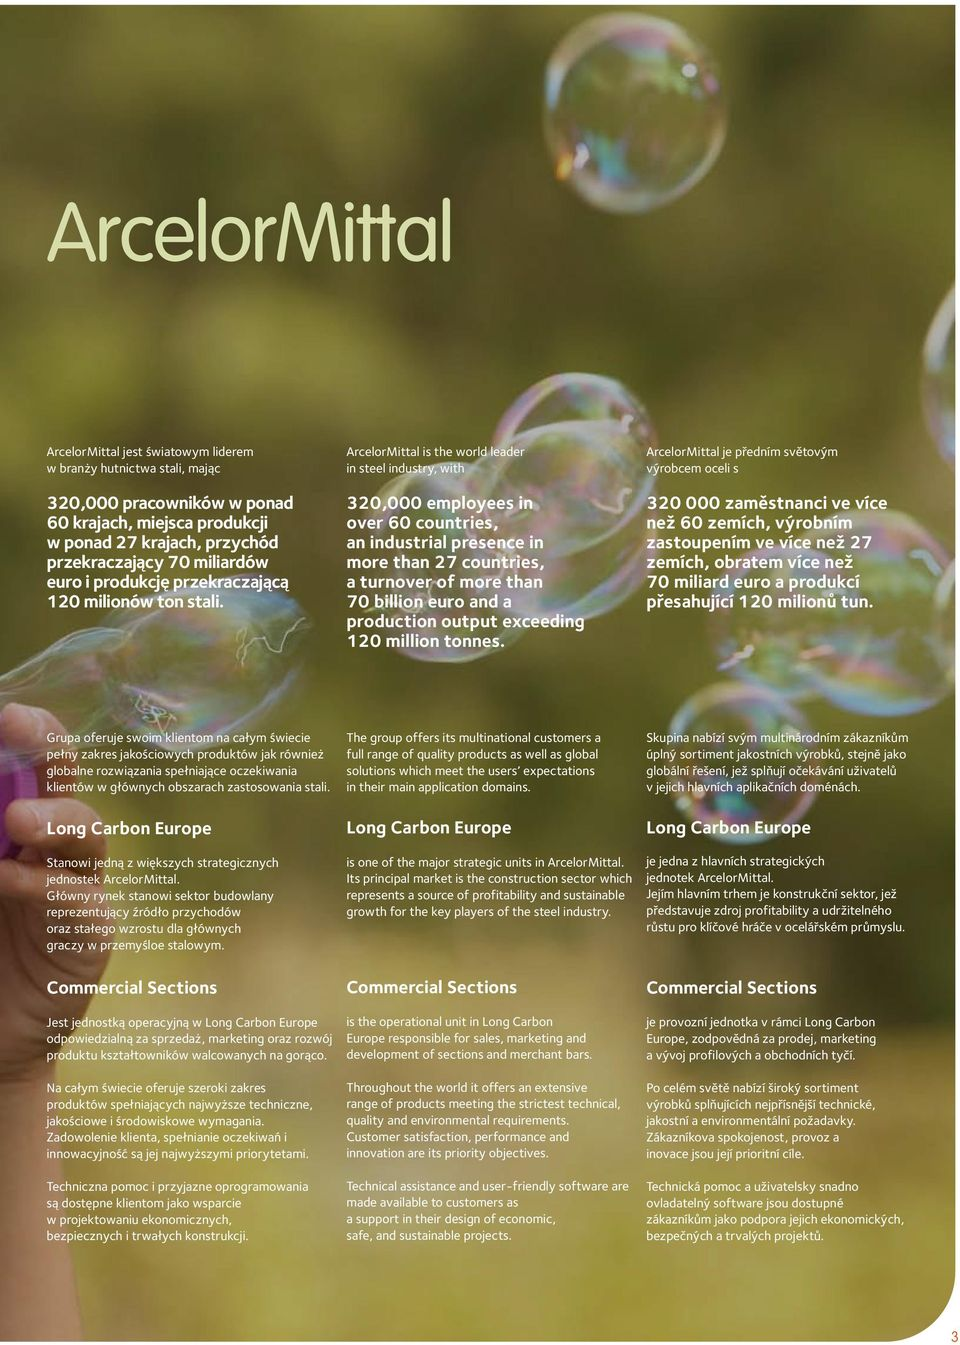 ArcelorMittal is the world leader in steel industry, with 320,000 employees in over 60 countries, an industrial presence in more than 27 countries, a turnover of more than 70 billion euro and a